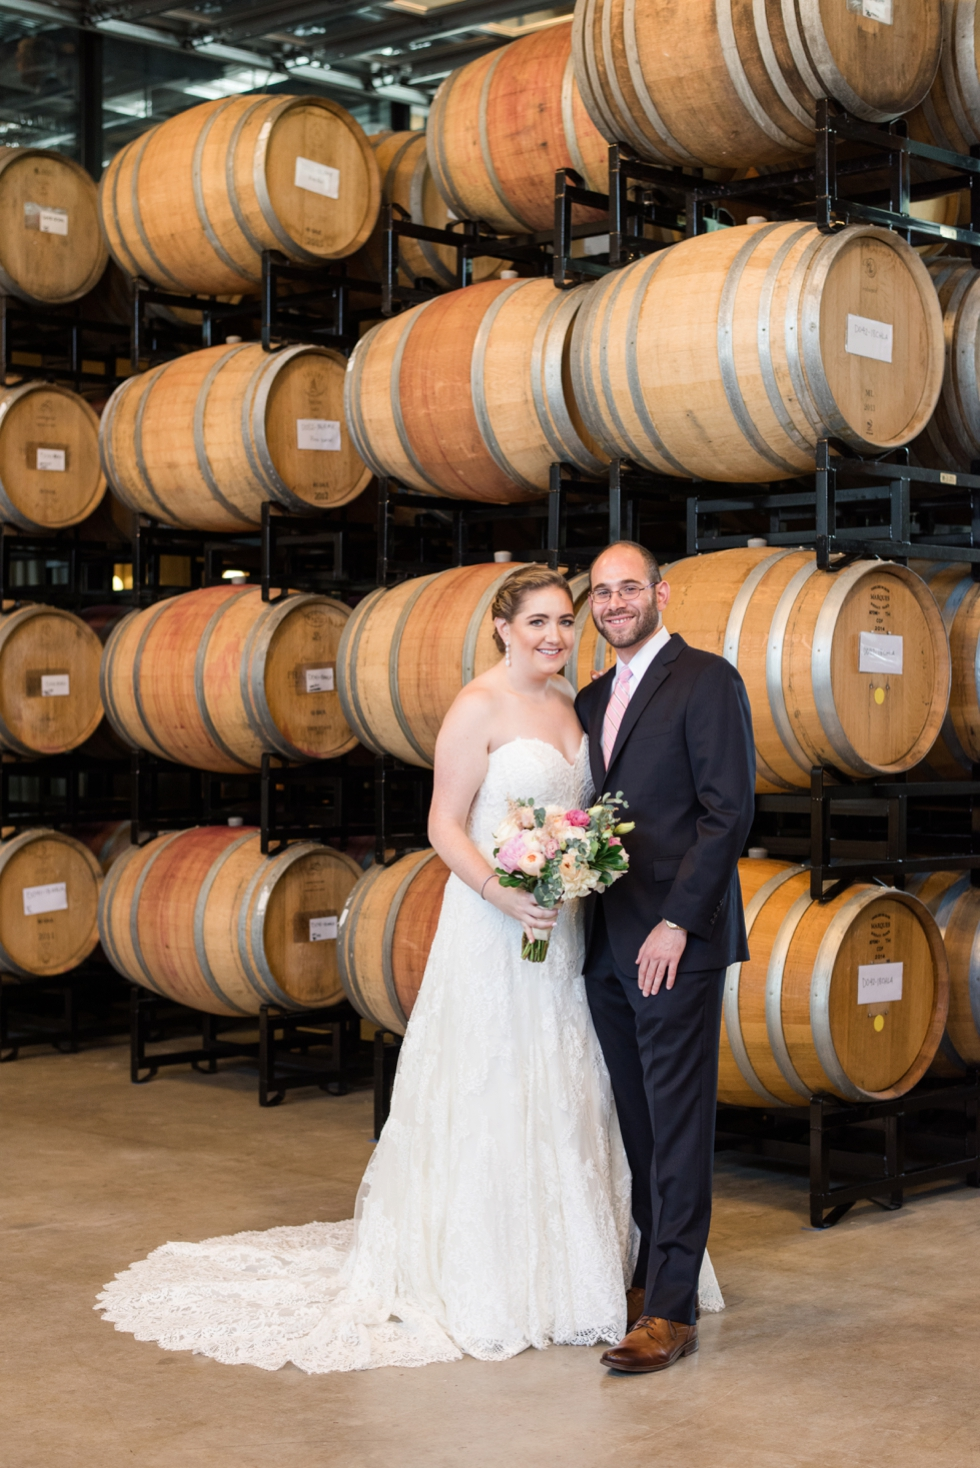 District Winery barrel room bride and groom